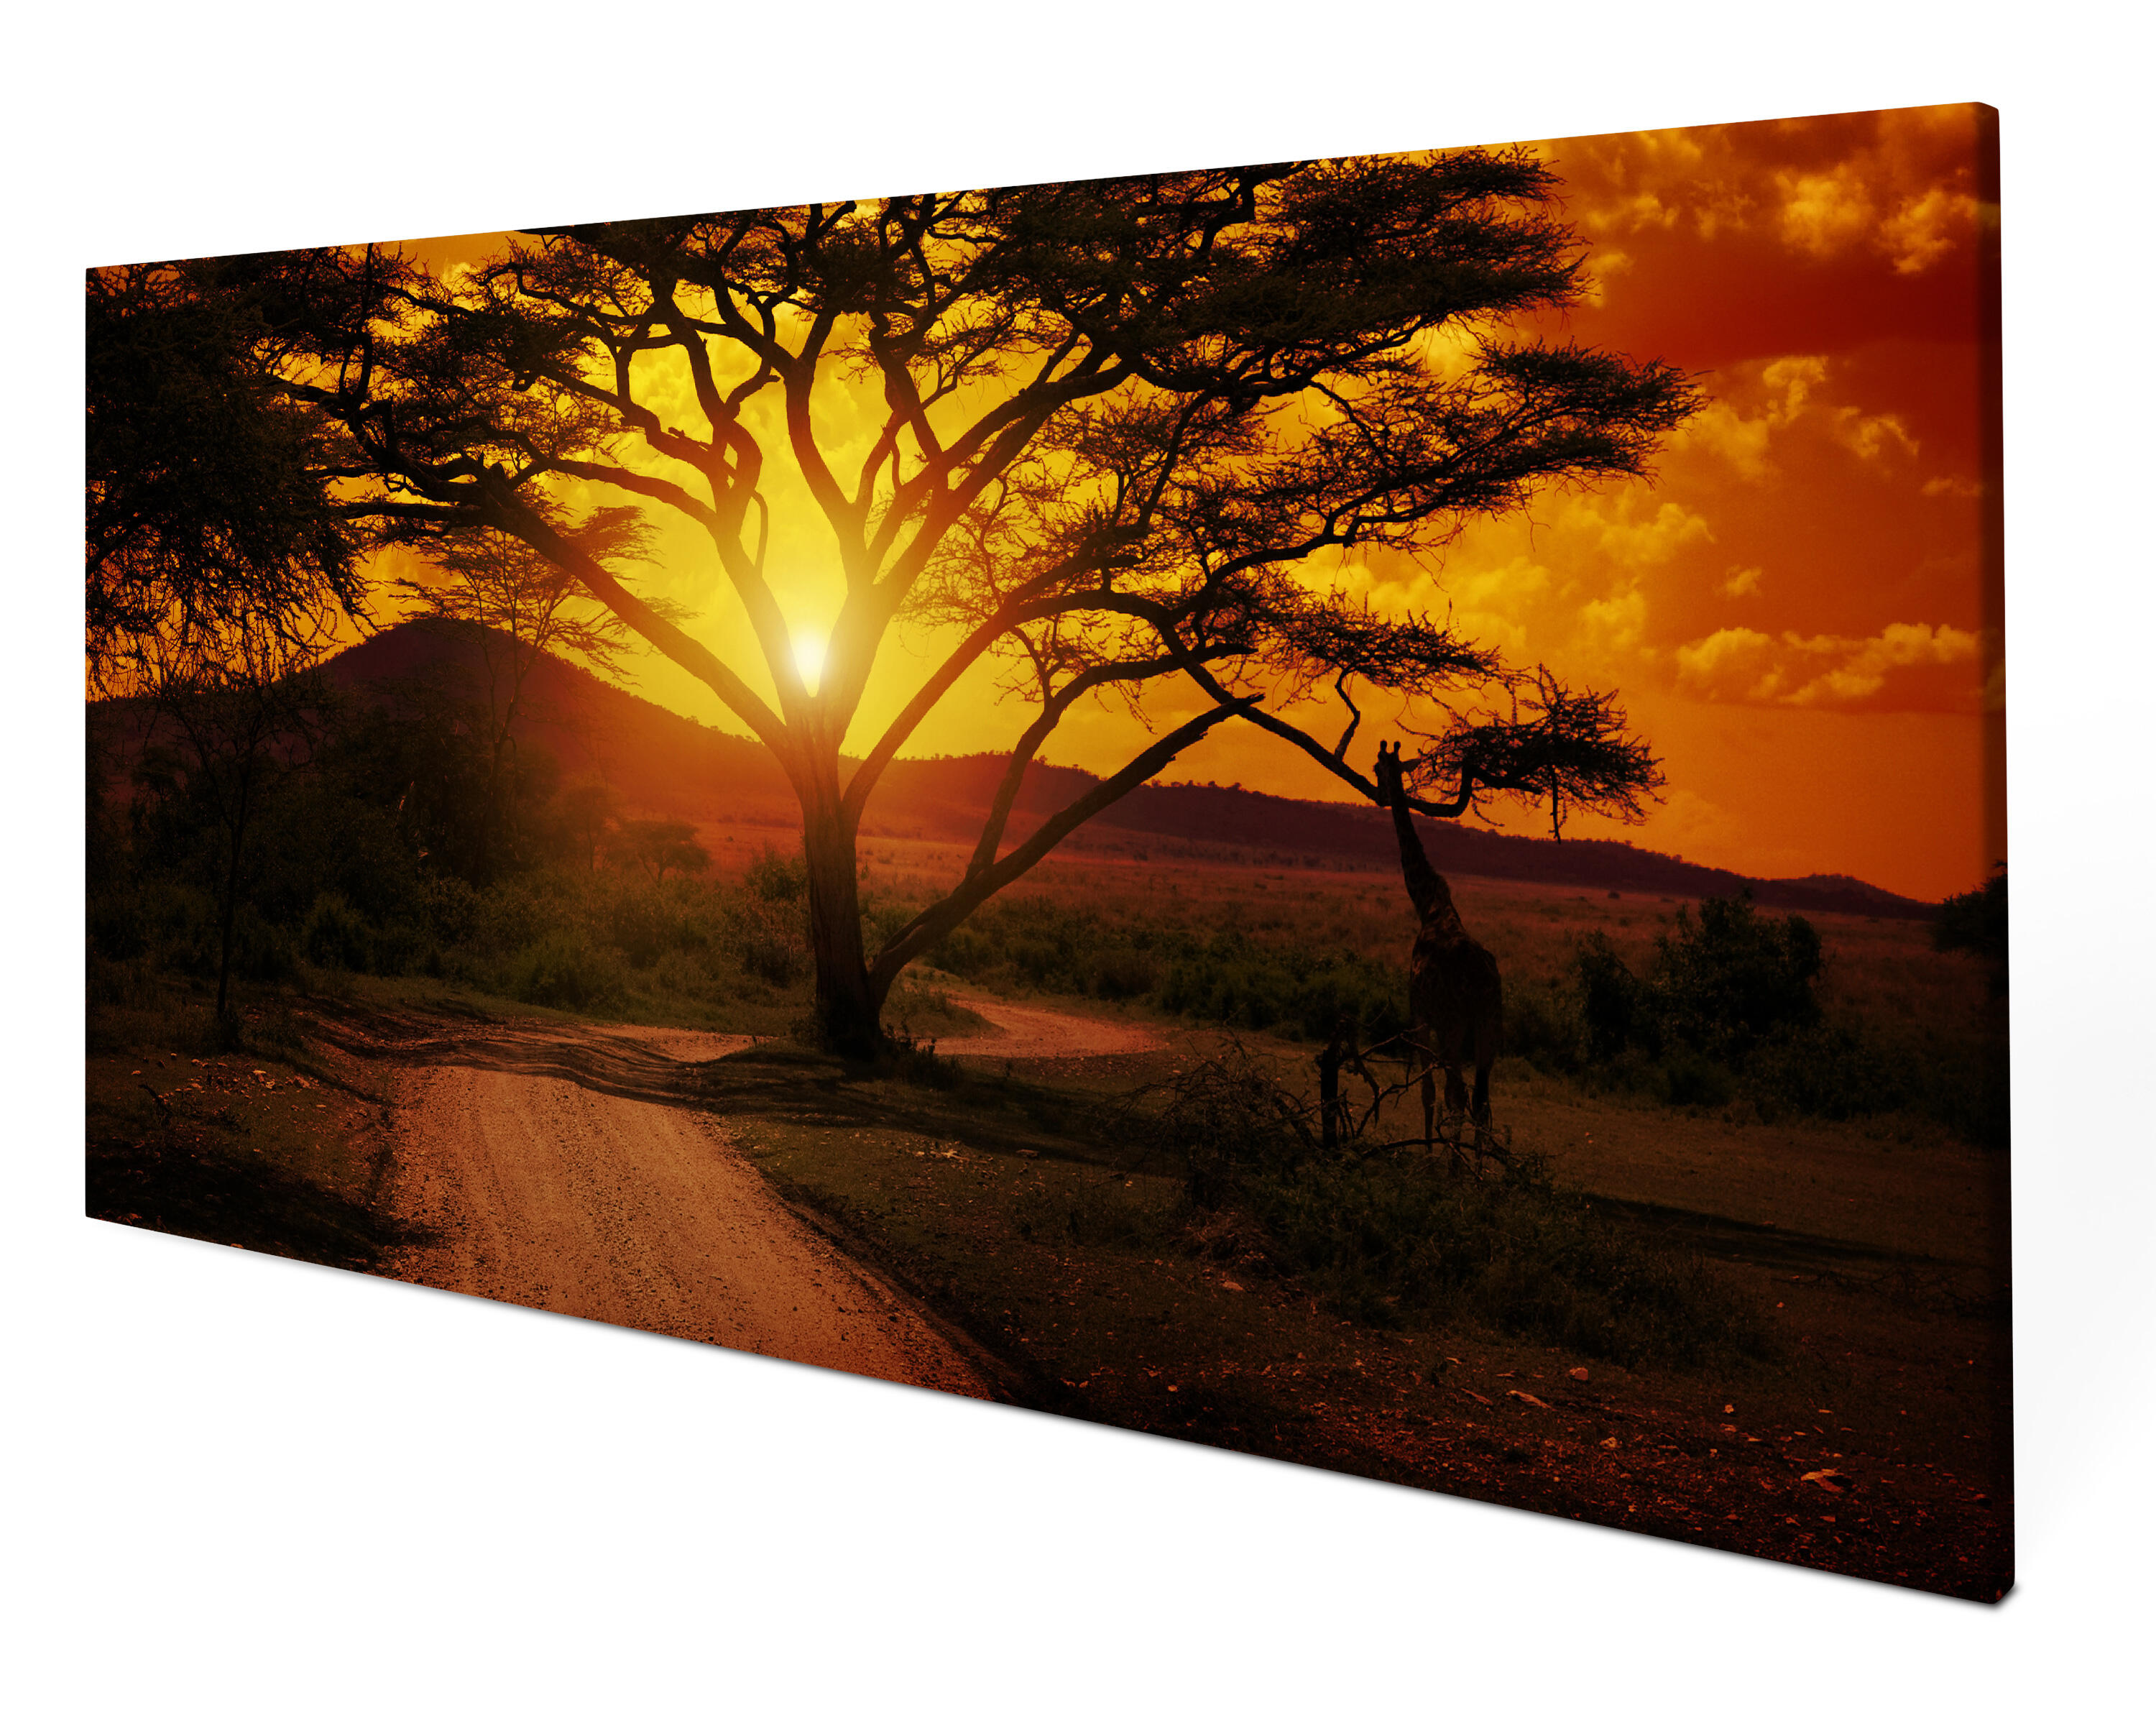 leinwandbild afrika sonnenuntergang panoramabild kunstdrucke m0001 ebay. Black Bedroom Furniture Sets. Home Design Ideas